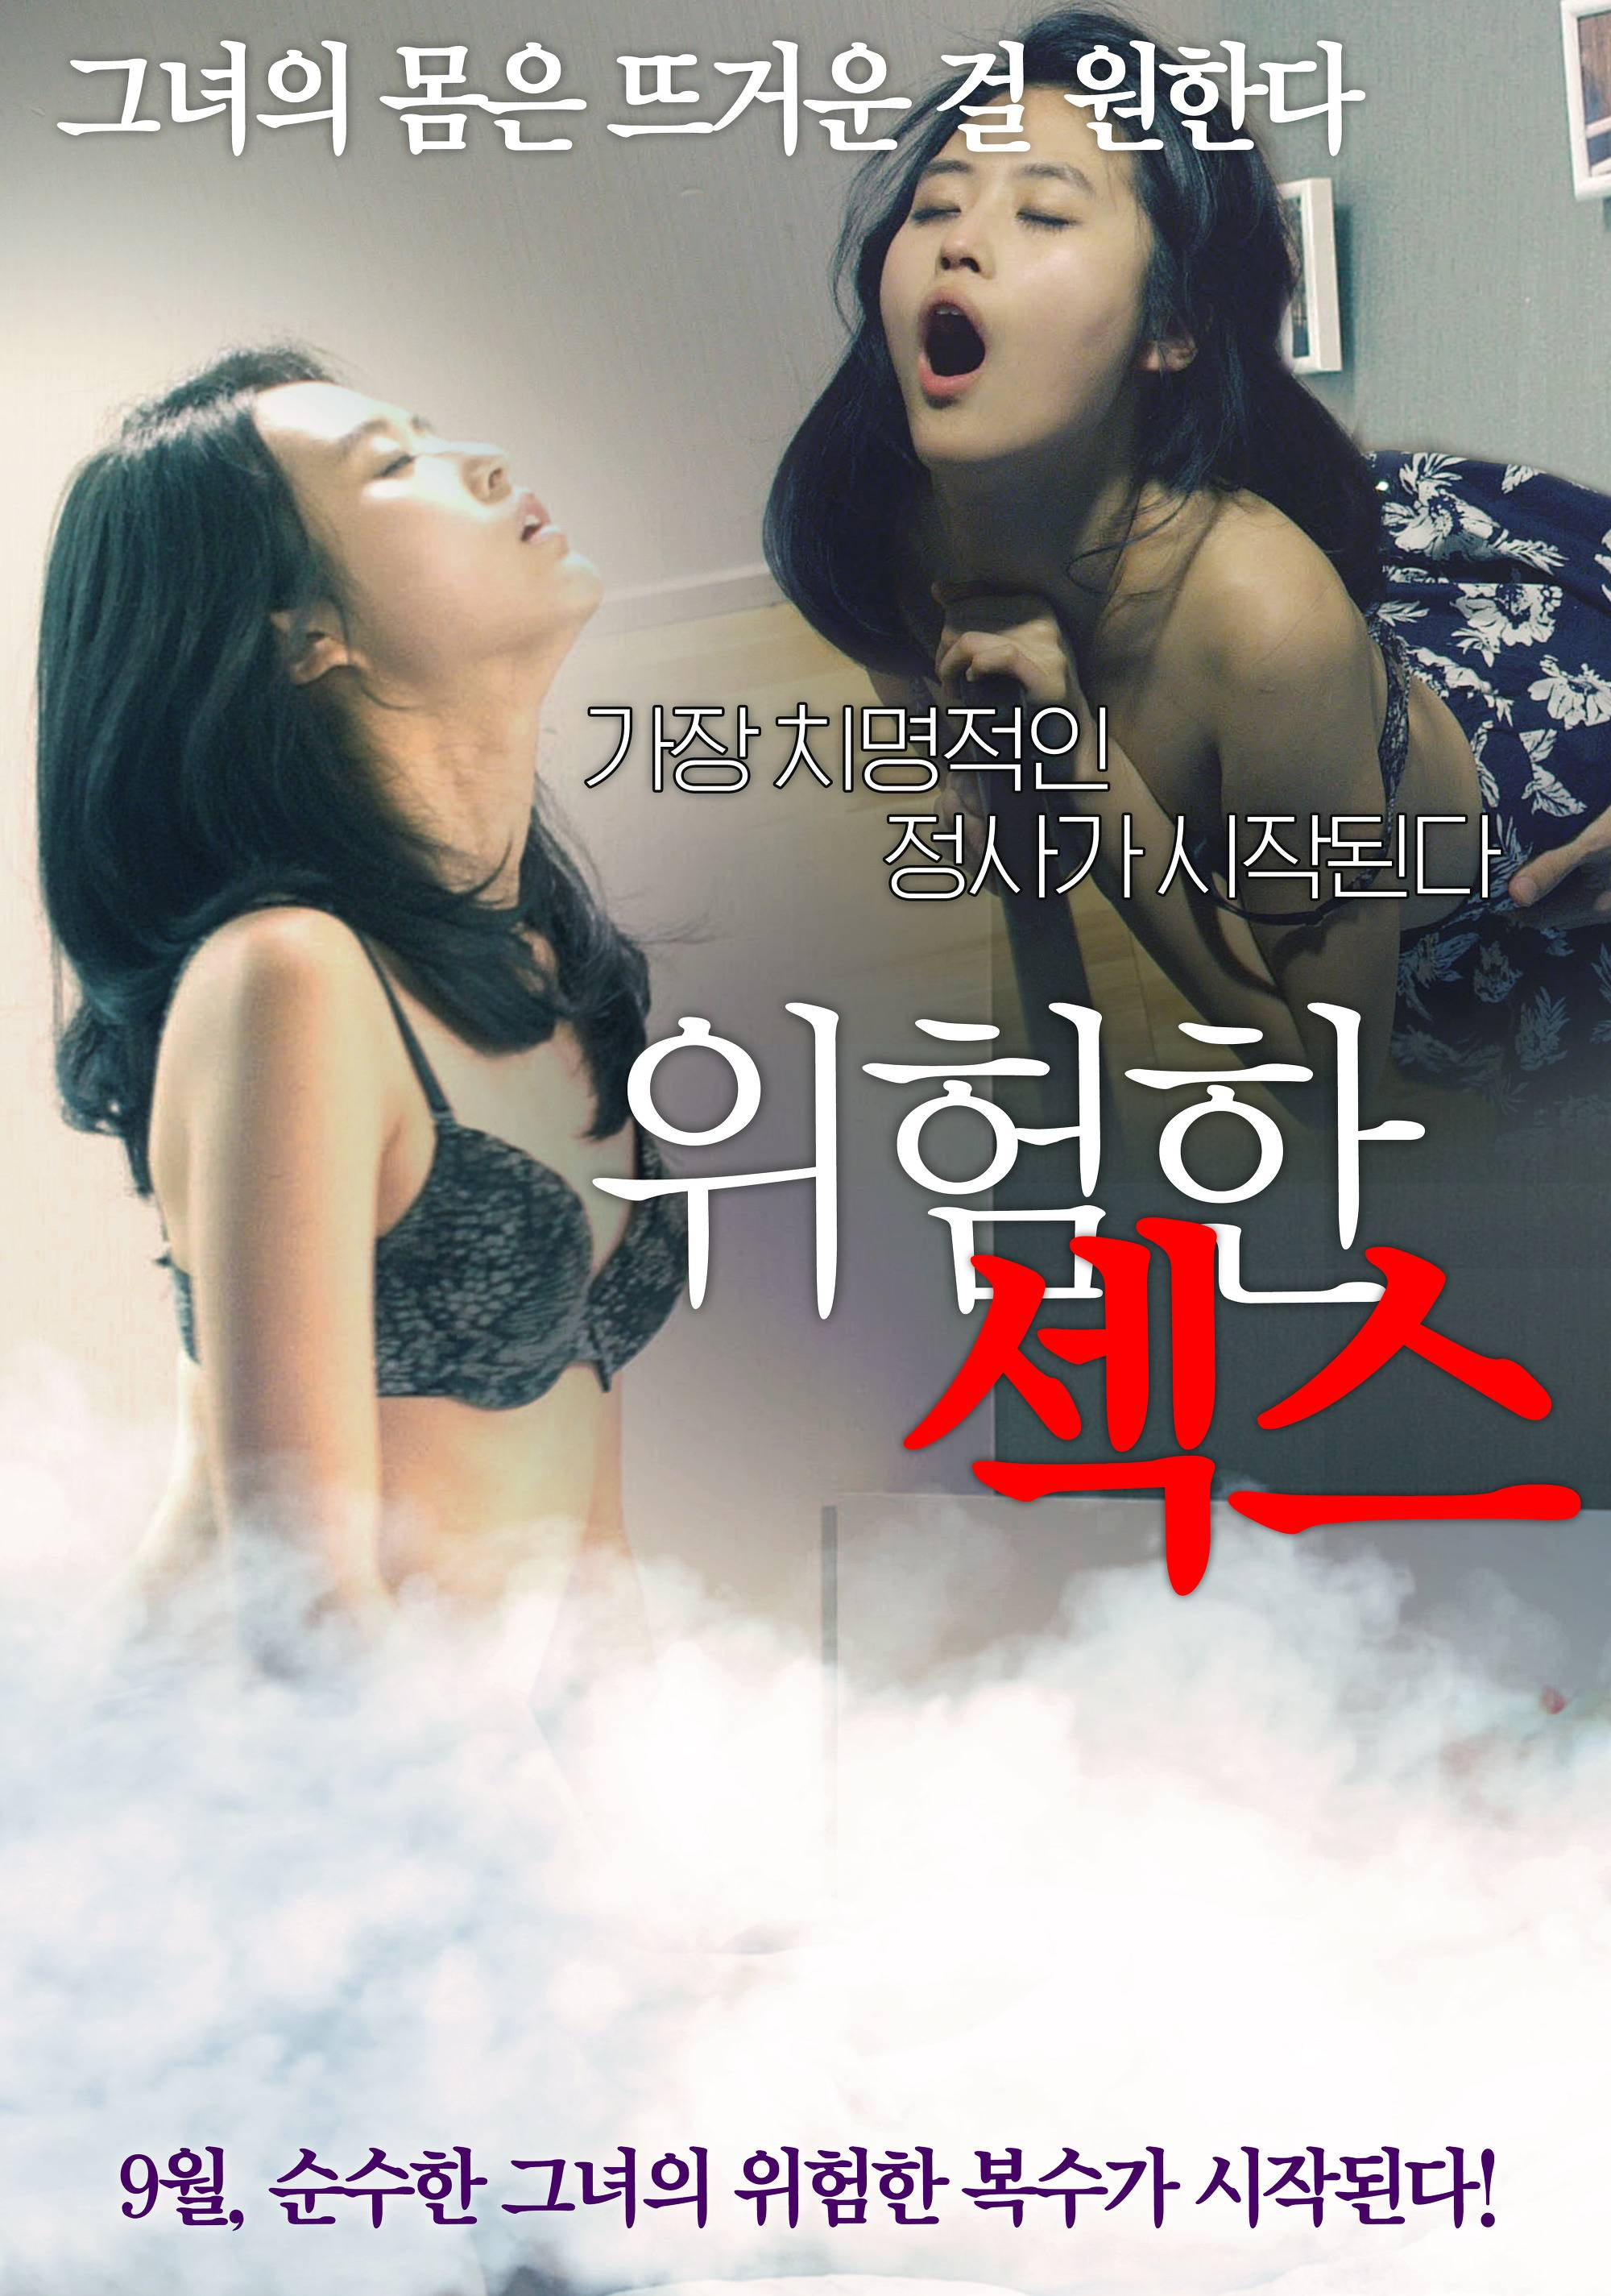 video] adult rated trailer released for the korean movie 'dangerous